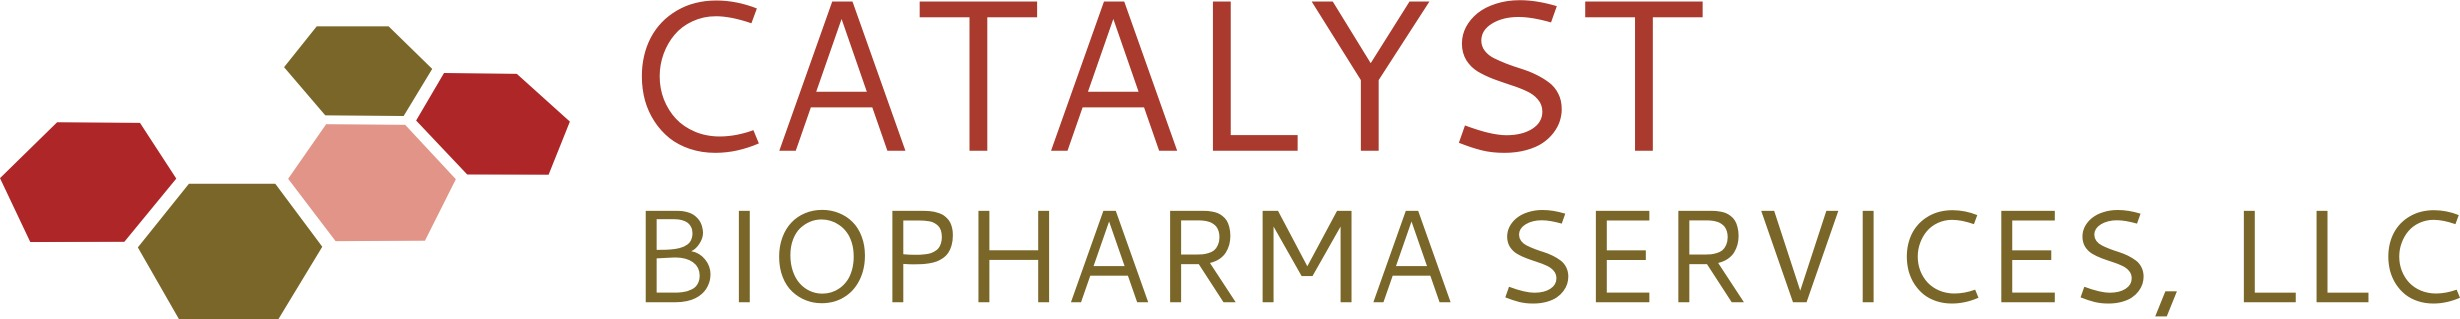 Catalyst Biopharma Services Logo